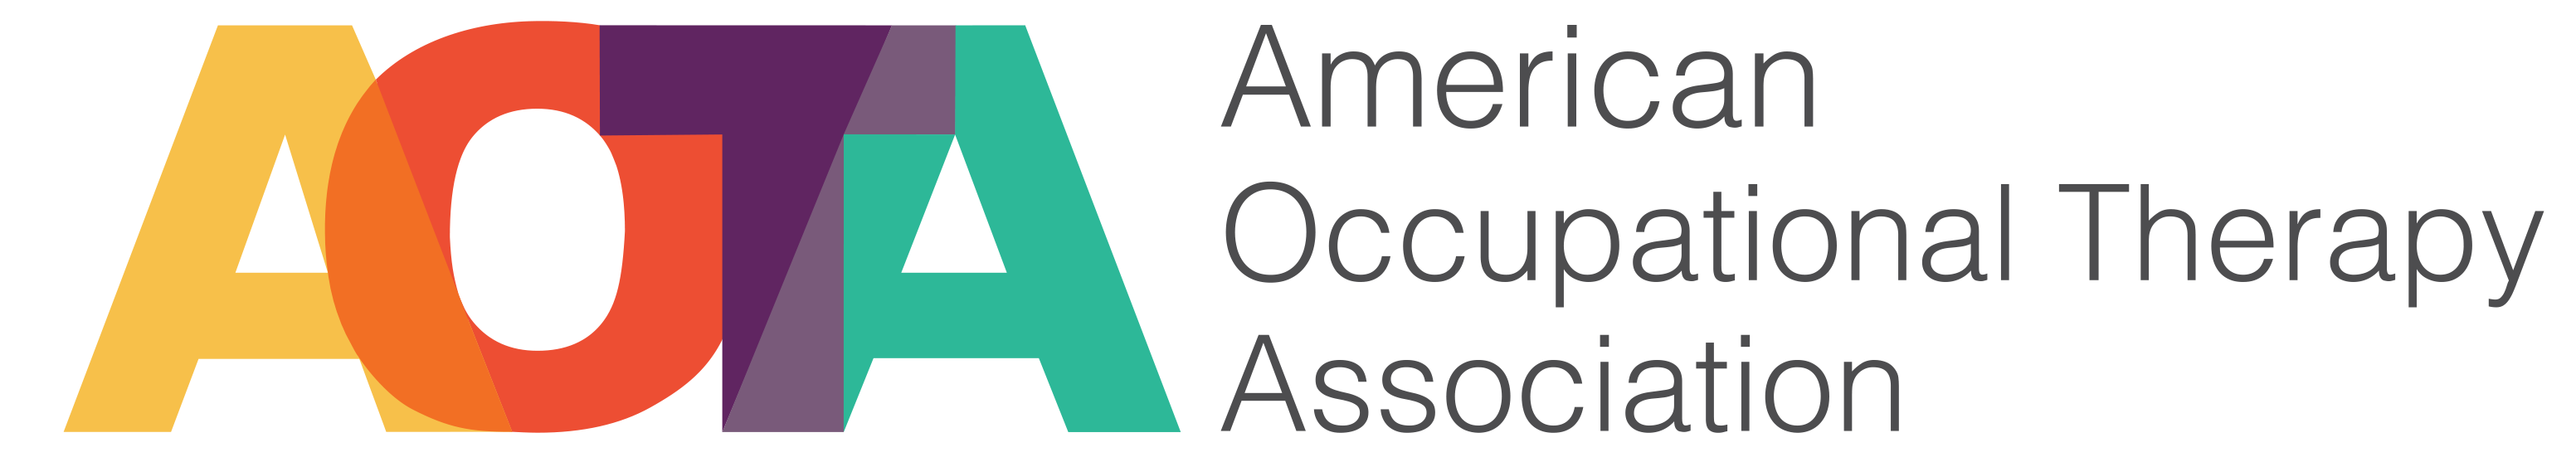 AOTA_Full-Color-Logo_Association_HORIZONTAL